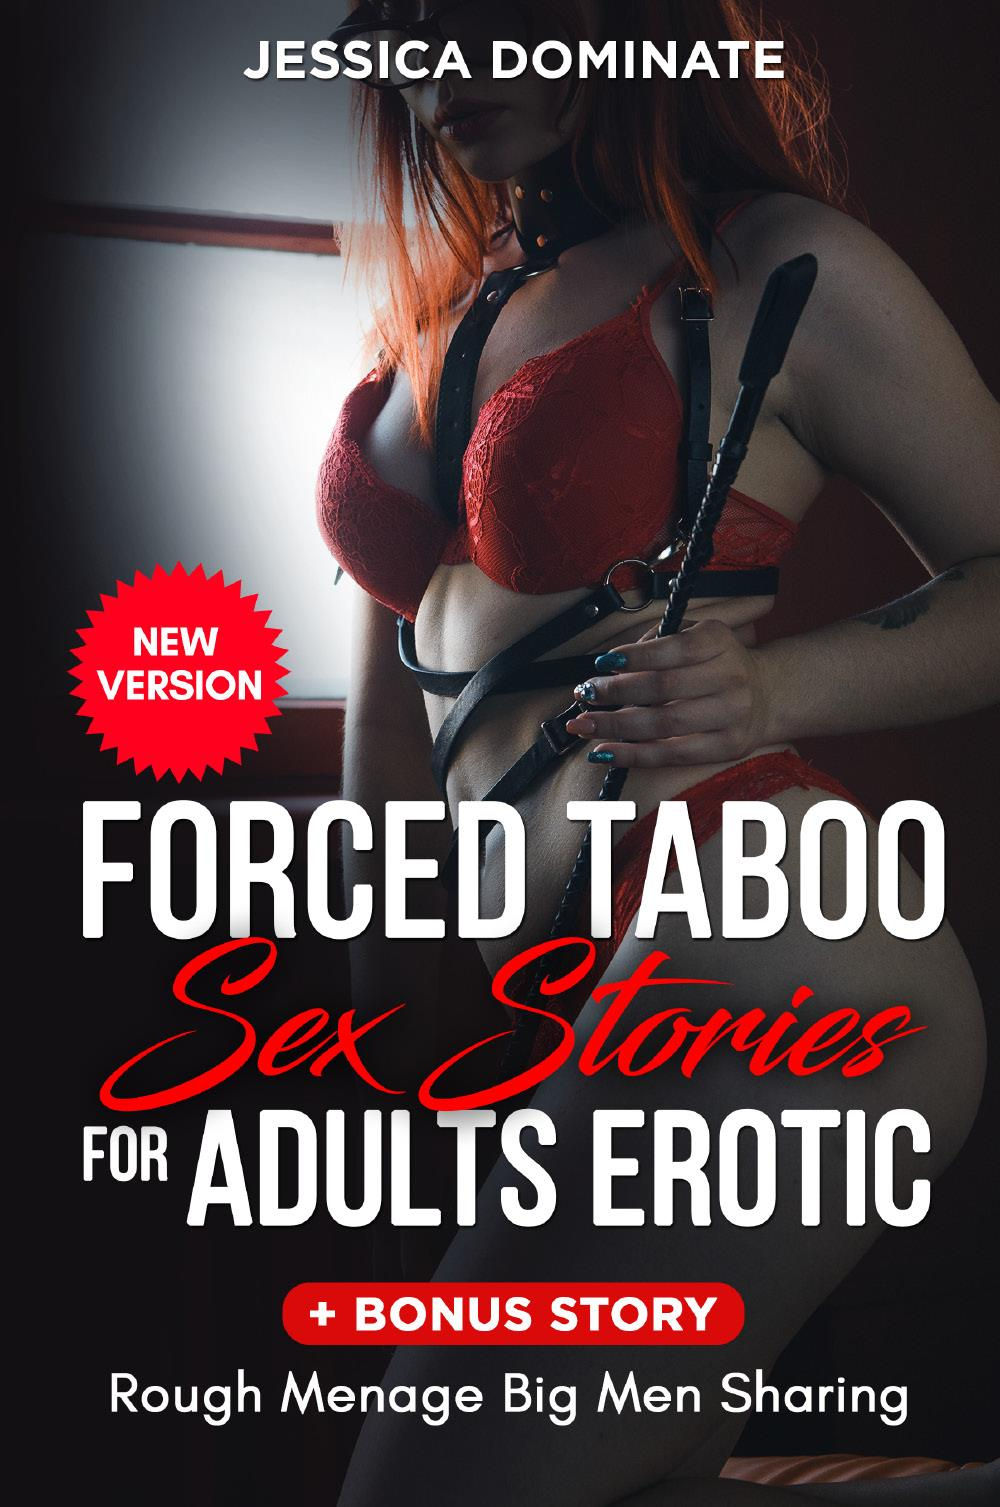 Forced Taboo Sex Stories For Adults Erotic + Bonus Story